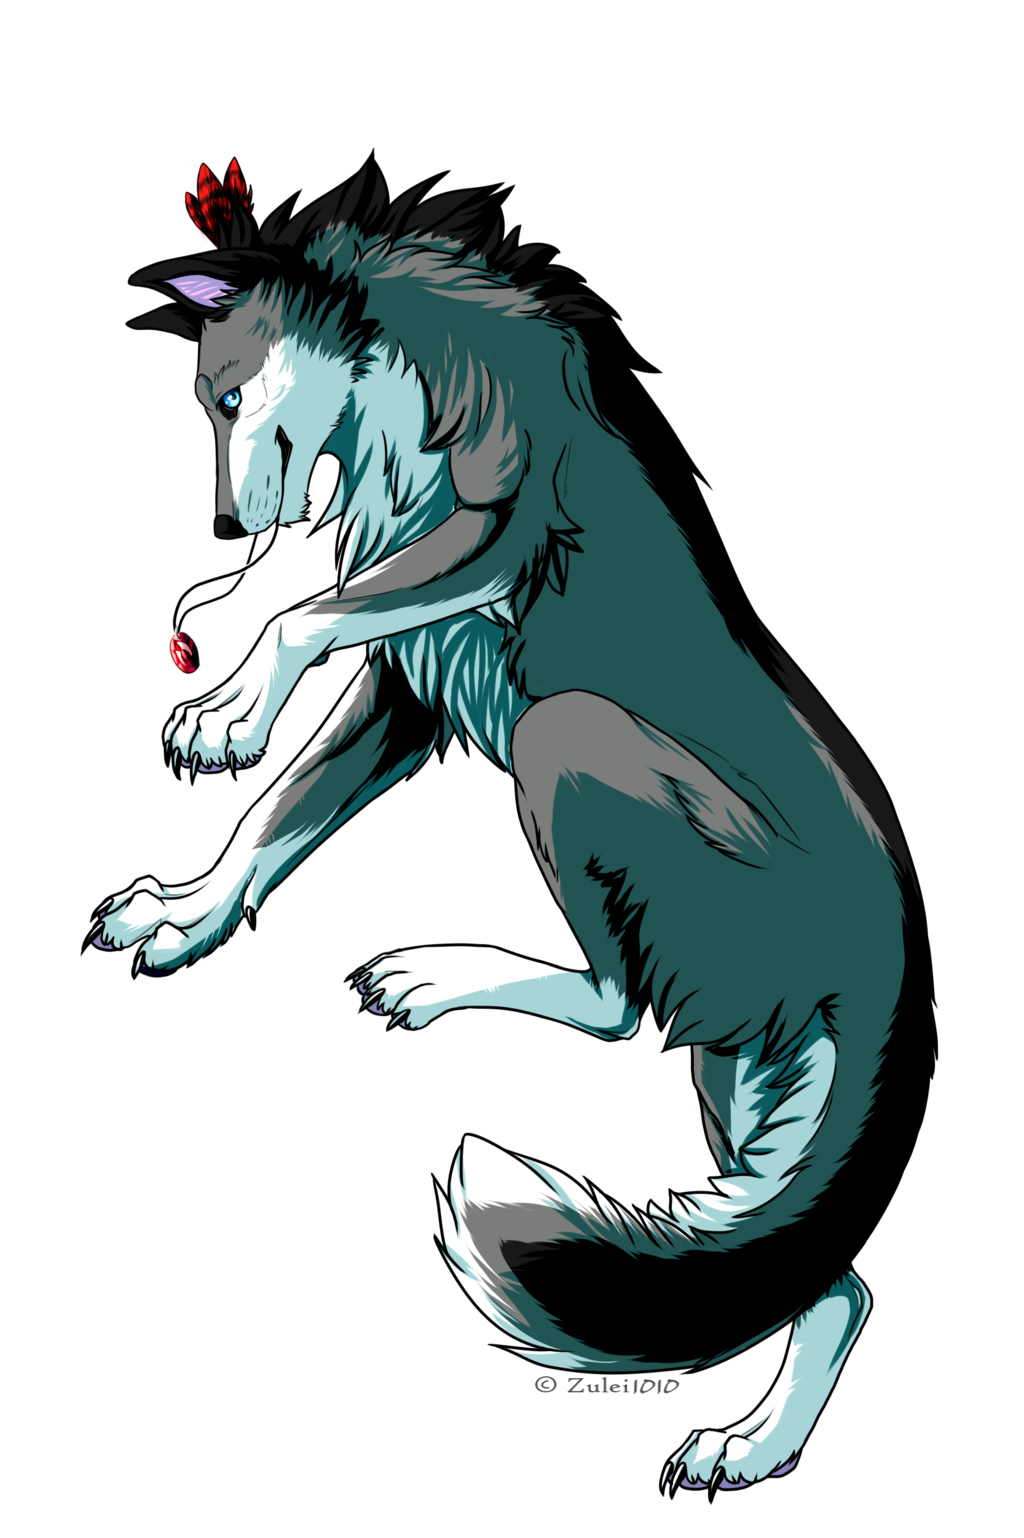 Fang transparent anime wolf. Pcm silver by zulei